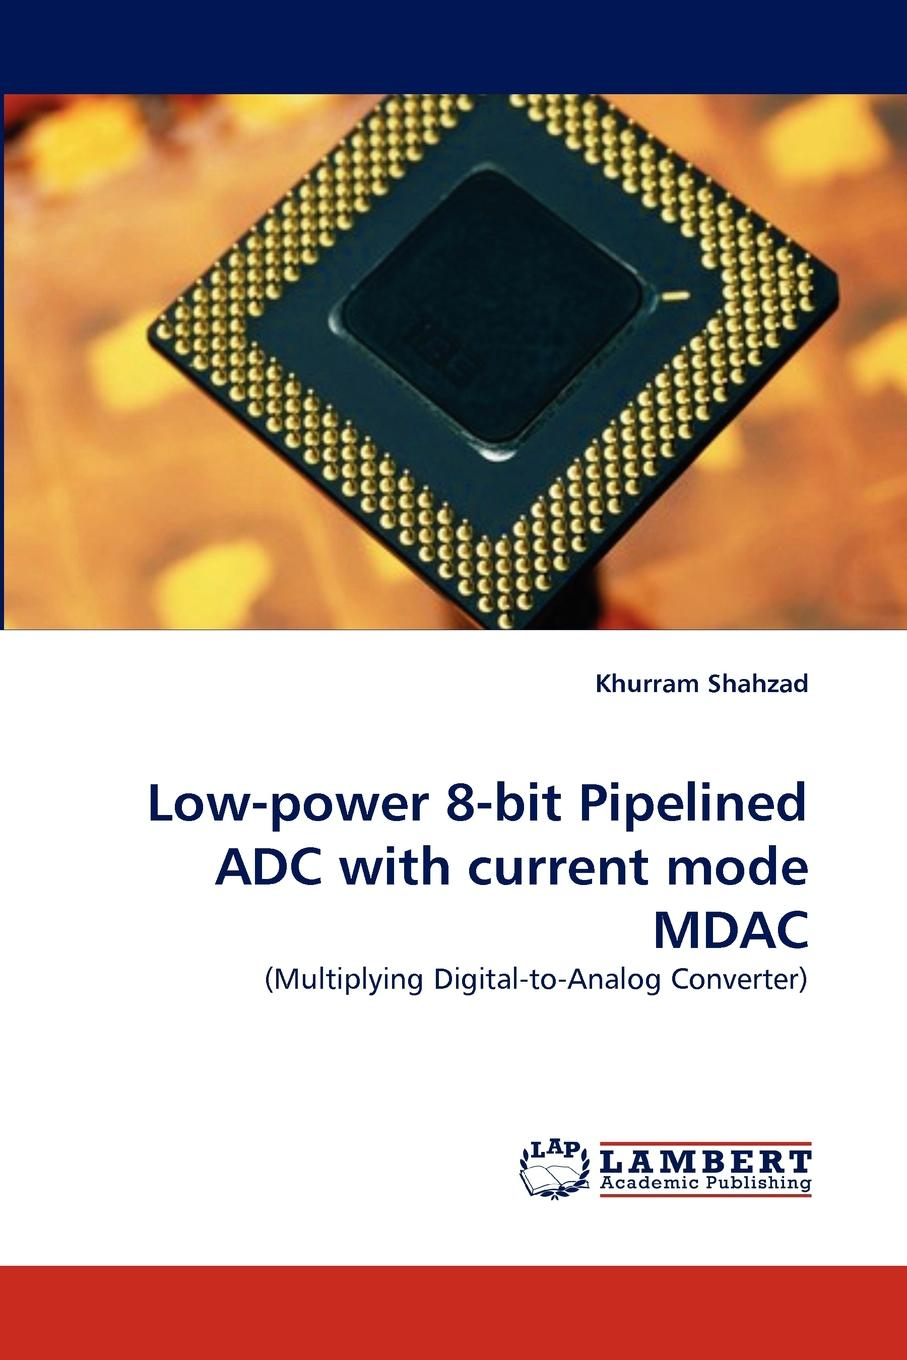 Khurram Shahzad Low-Power 8-Bit Pipelined Adc with Current Mode Mdac ad7606 module stm32 processor synchronize 8 bit 16 bit adc 200k sampling